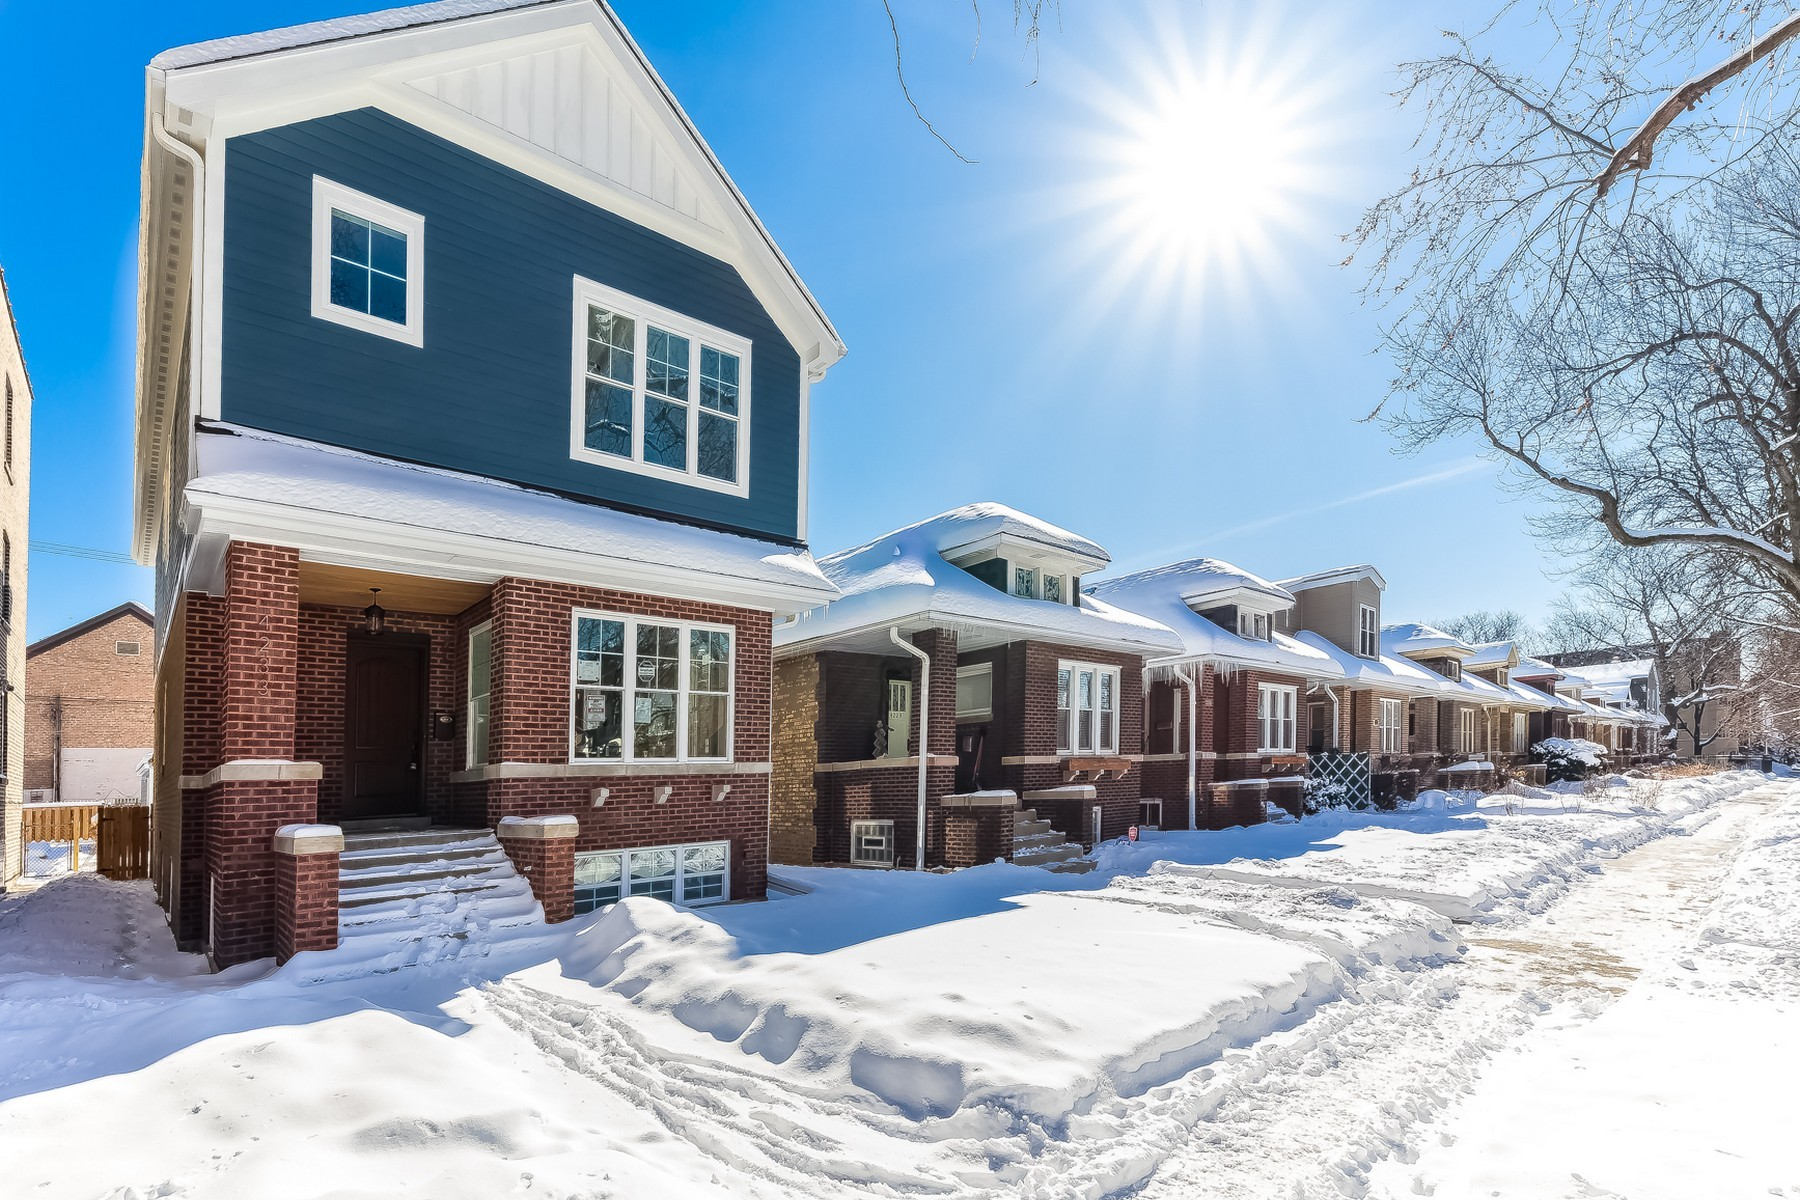 Single Family Home for Sale at Spectacular Single Family Home 4233 N Mozart Street, North Center, Chicago, Illinois, 60618 United States